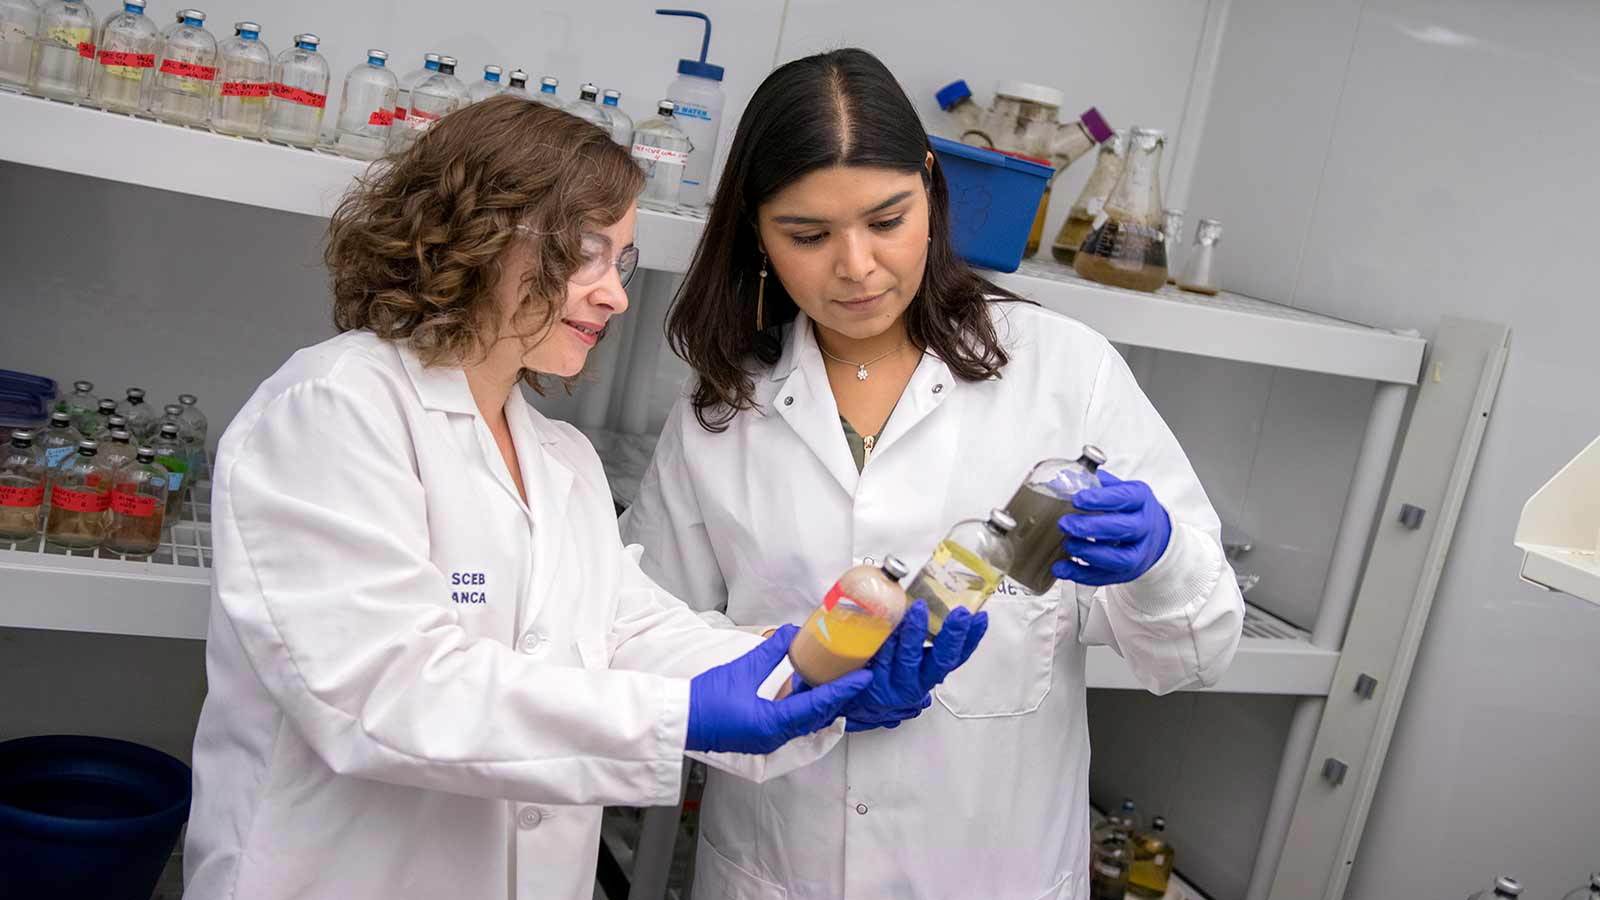 A female professor and student look at test samples together.